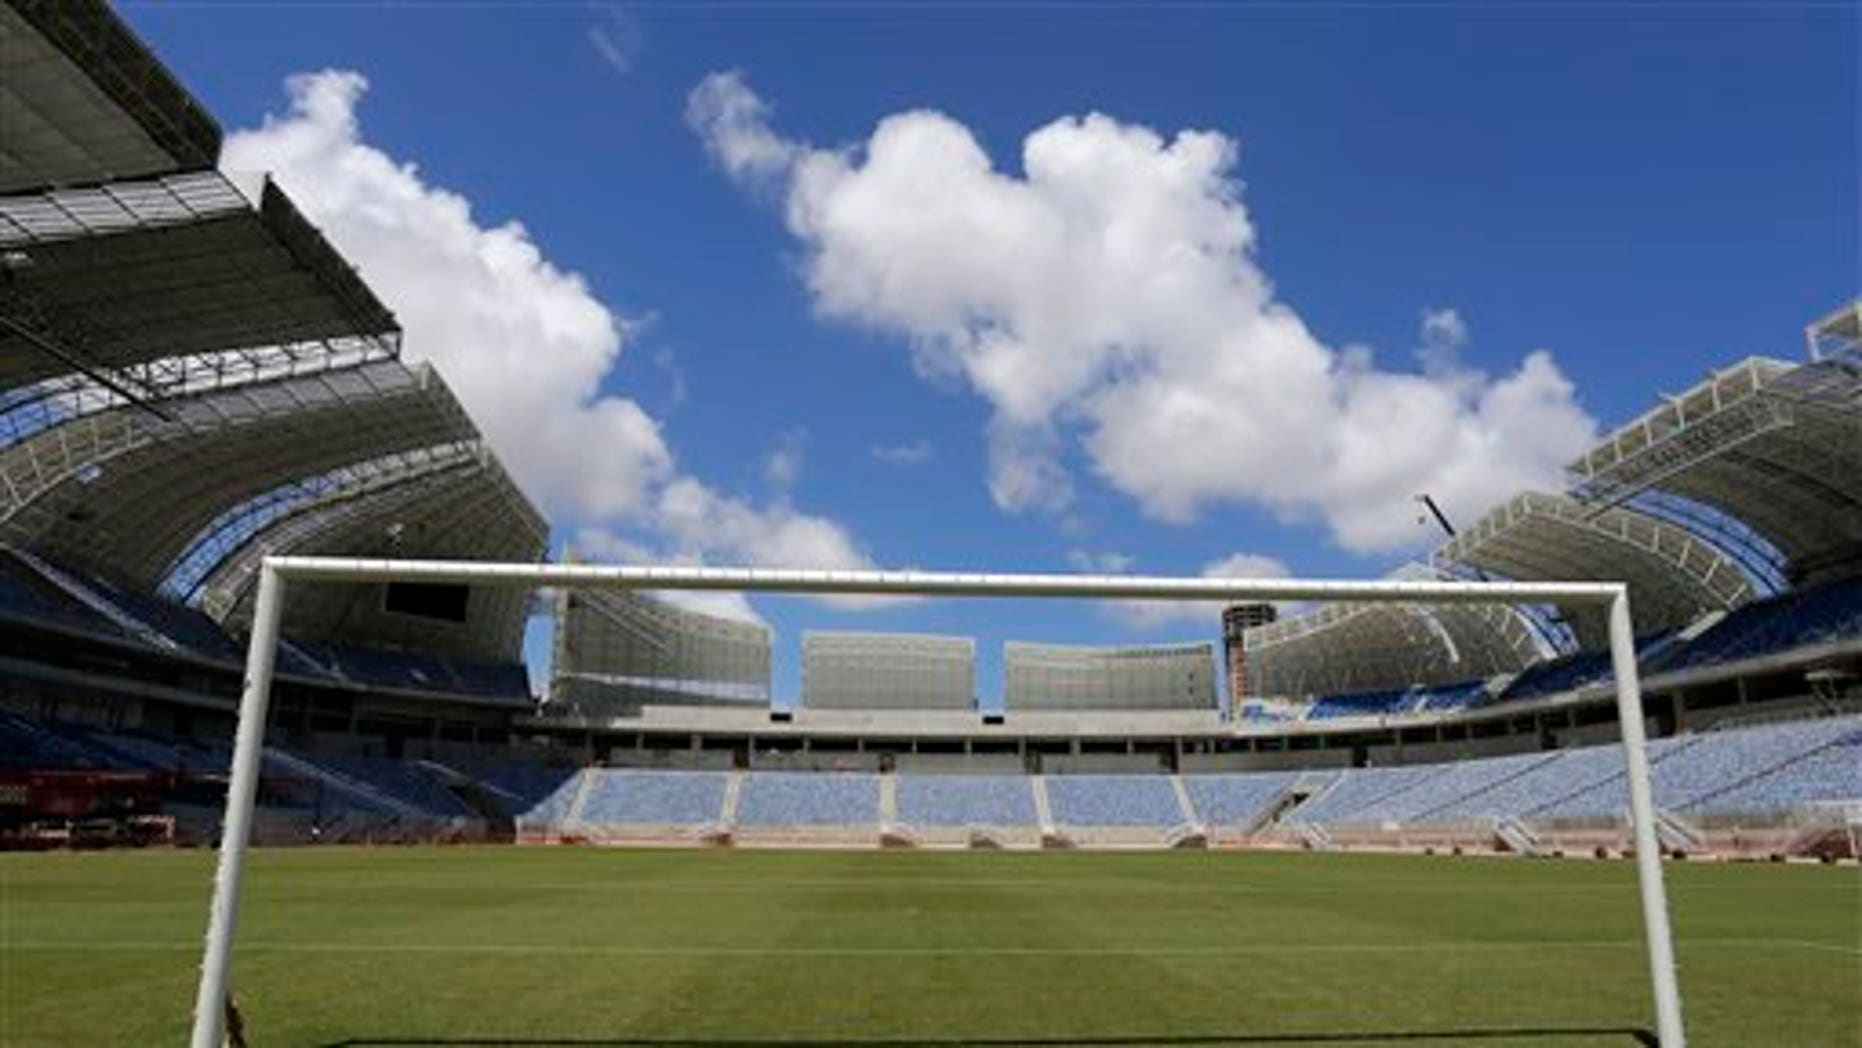 The empty goal stands in the Estadio das Dunas in Natal, Brazil, Friday, Dec. 13, 2013. Four matches of the 2014 soccer World Cup will be played in the stadium. (AP Photo/Ferdinand Ostrop)